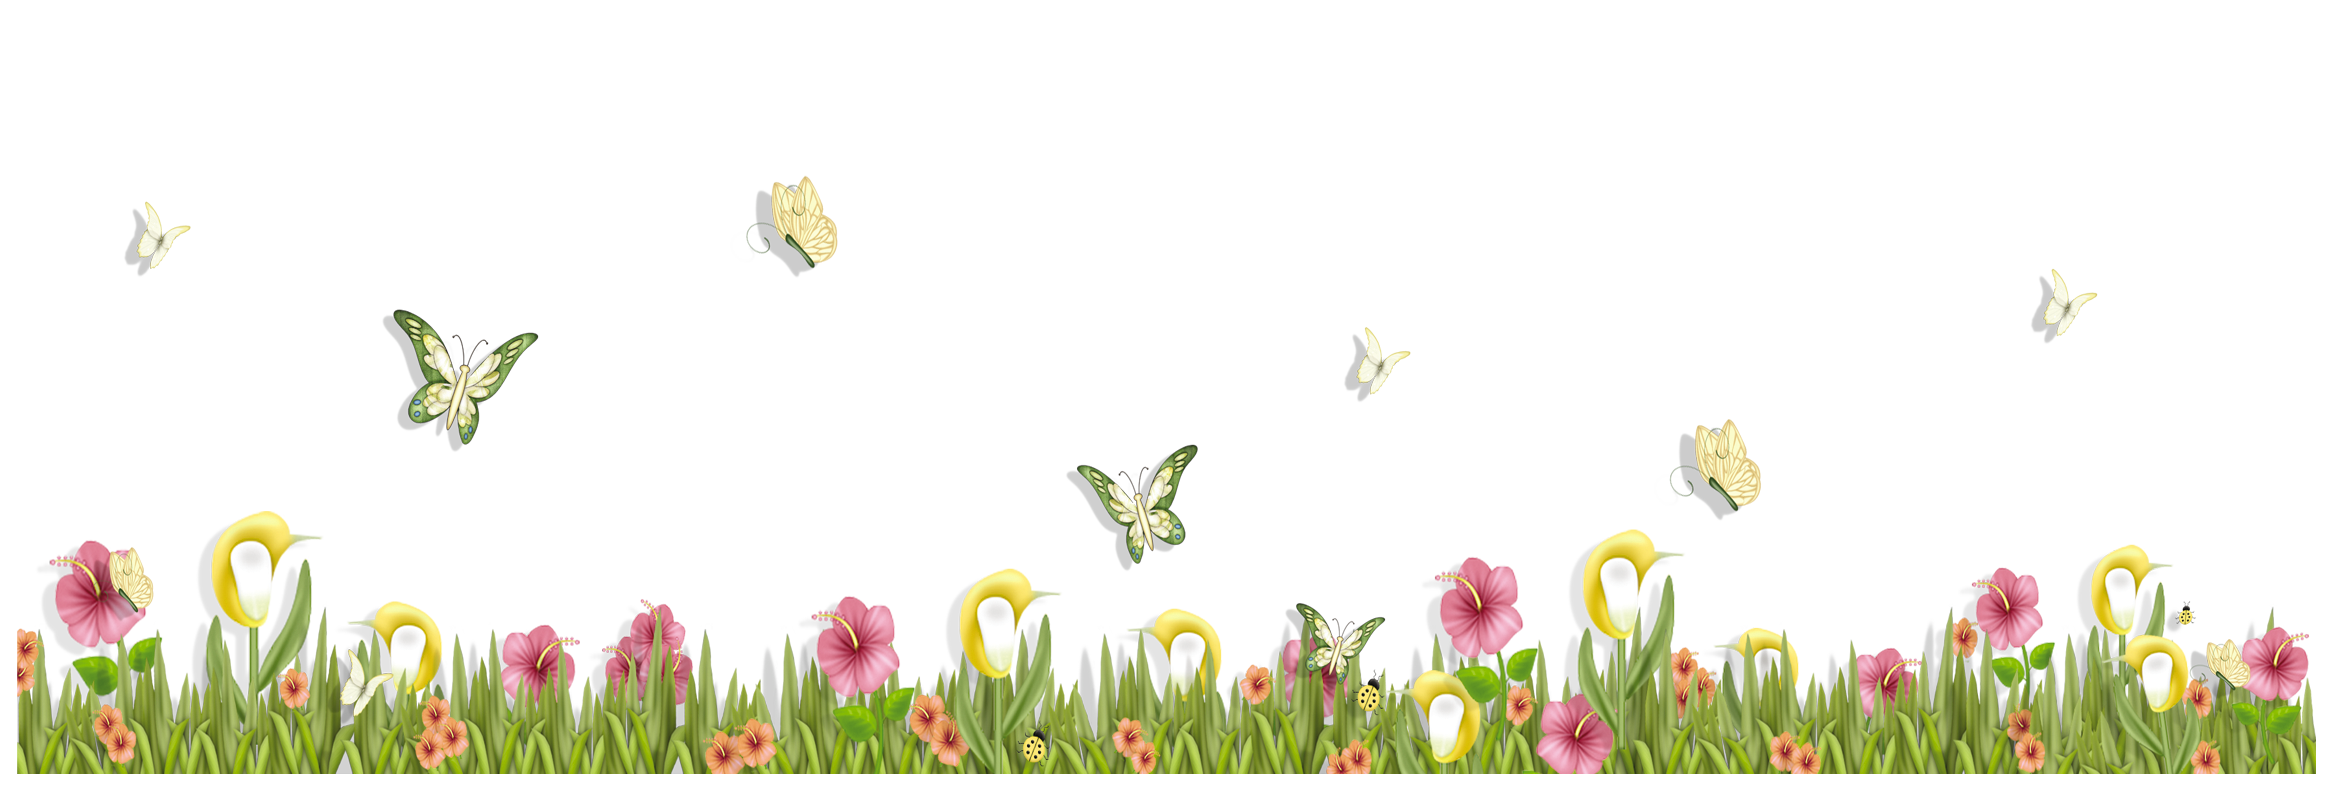 Grass with Butterflies and Flowers PNG Clipart.